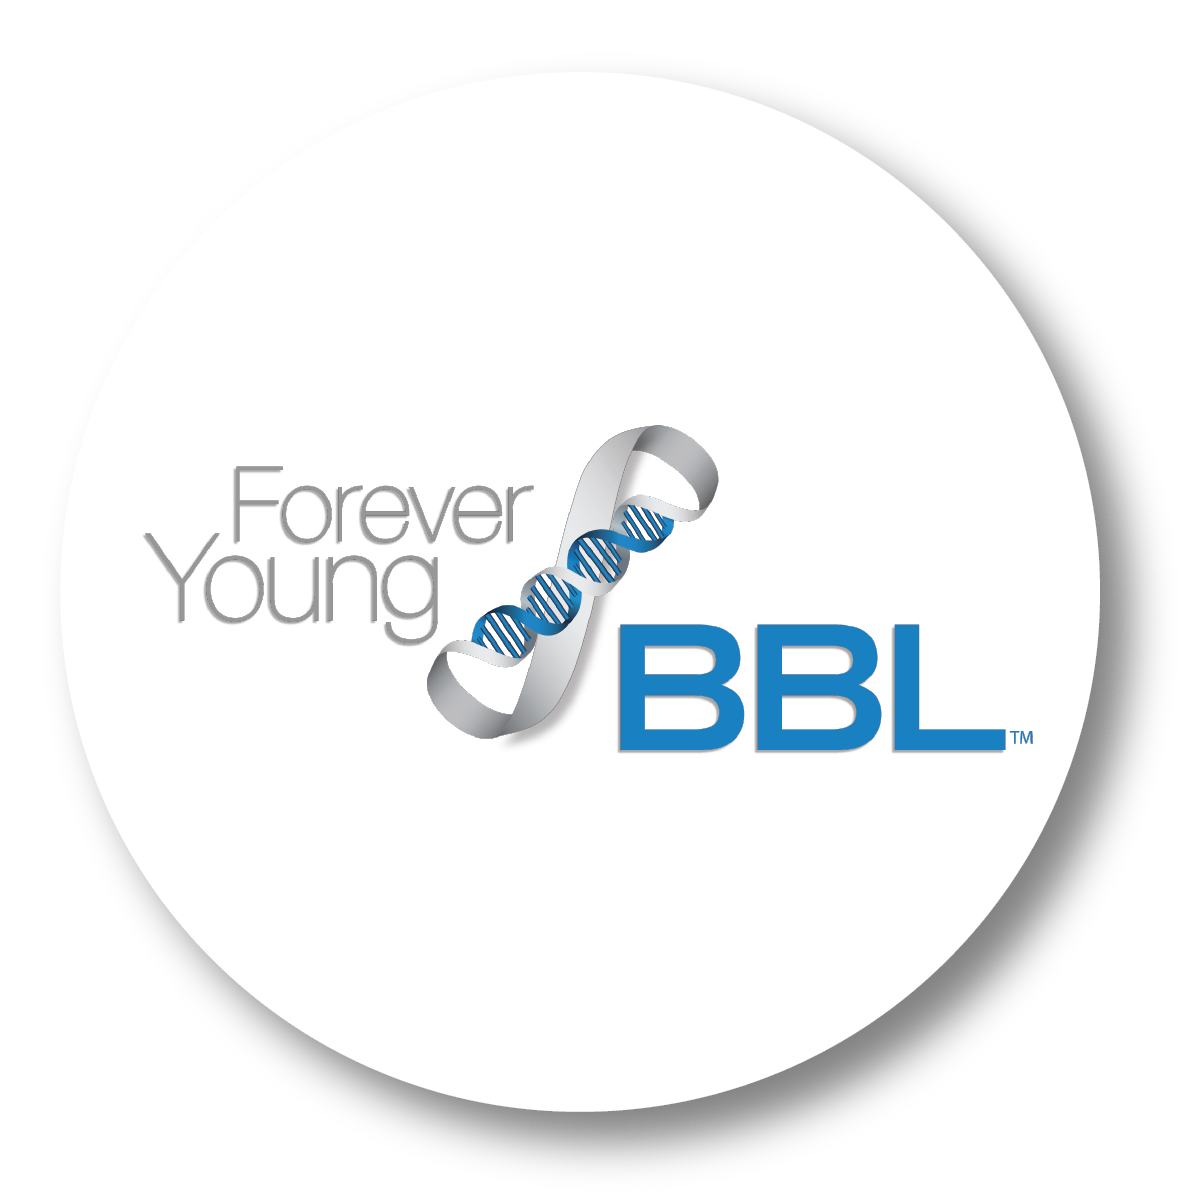 White Icons with Shadows_Forever Young BBL.png